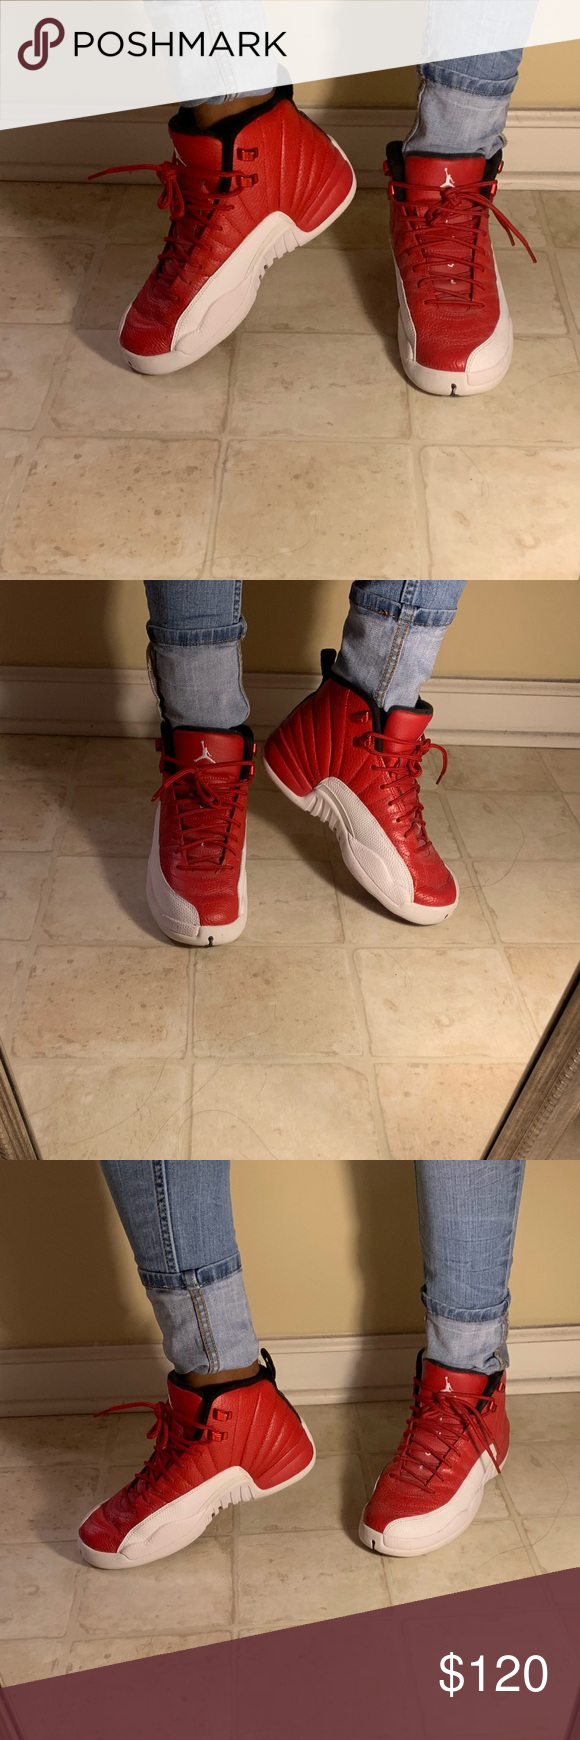 new product 2da7f 8d0a8 AIR JORDAN 12 RETRO Red and White These Jordan's are in ...